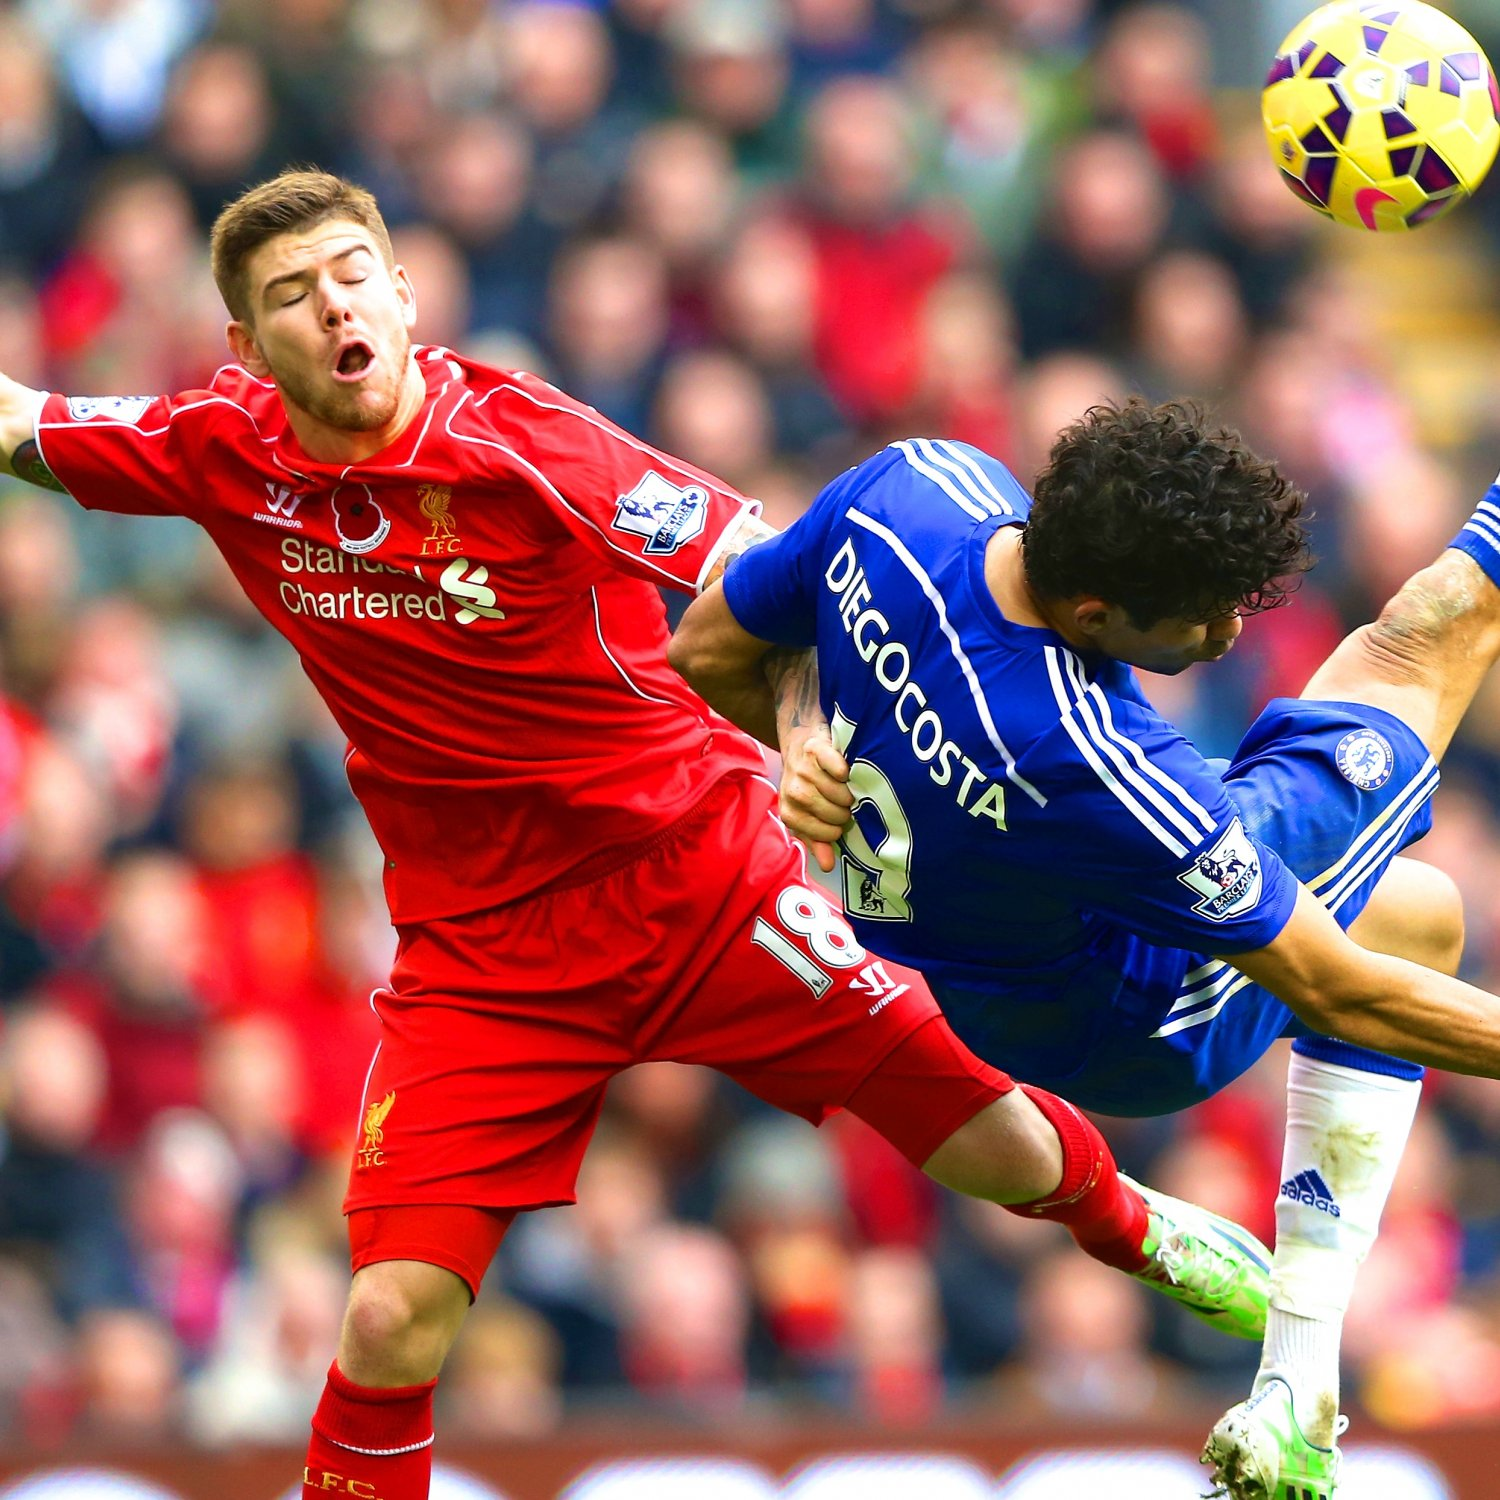 Liverpool Vs Chelsea: Liverpool Vs. Chelsea: Live Score, Highlights From Premier